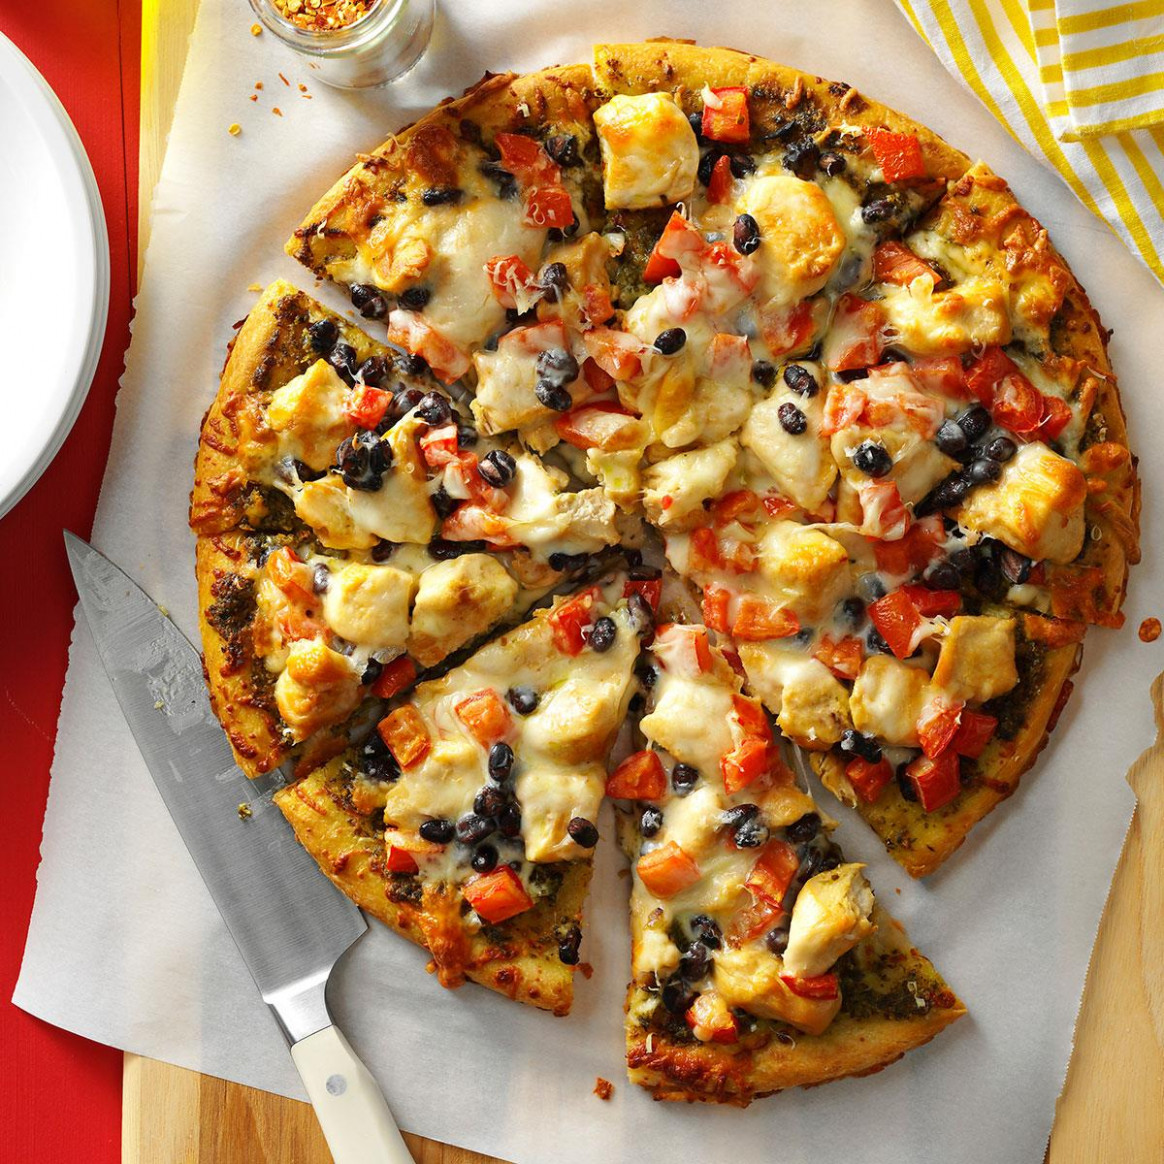 Chicken Pizza Recipe | Taste of Home - chicken recipes with pictures pdf